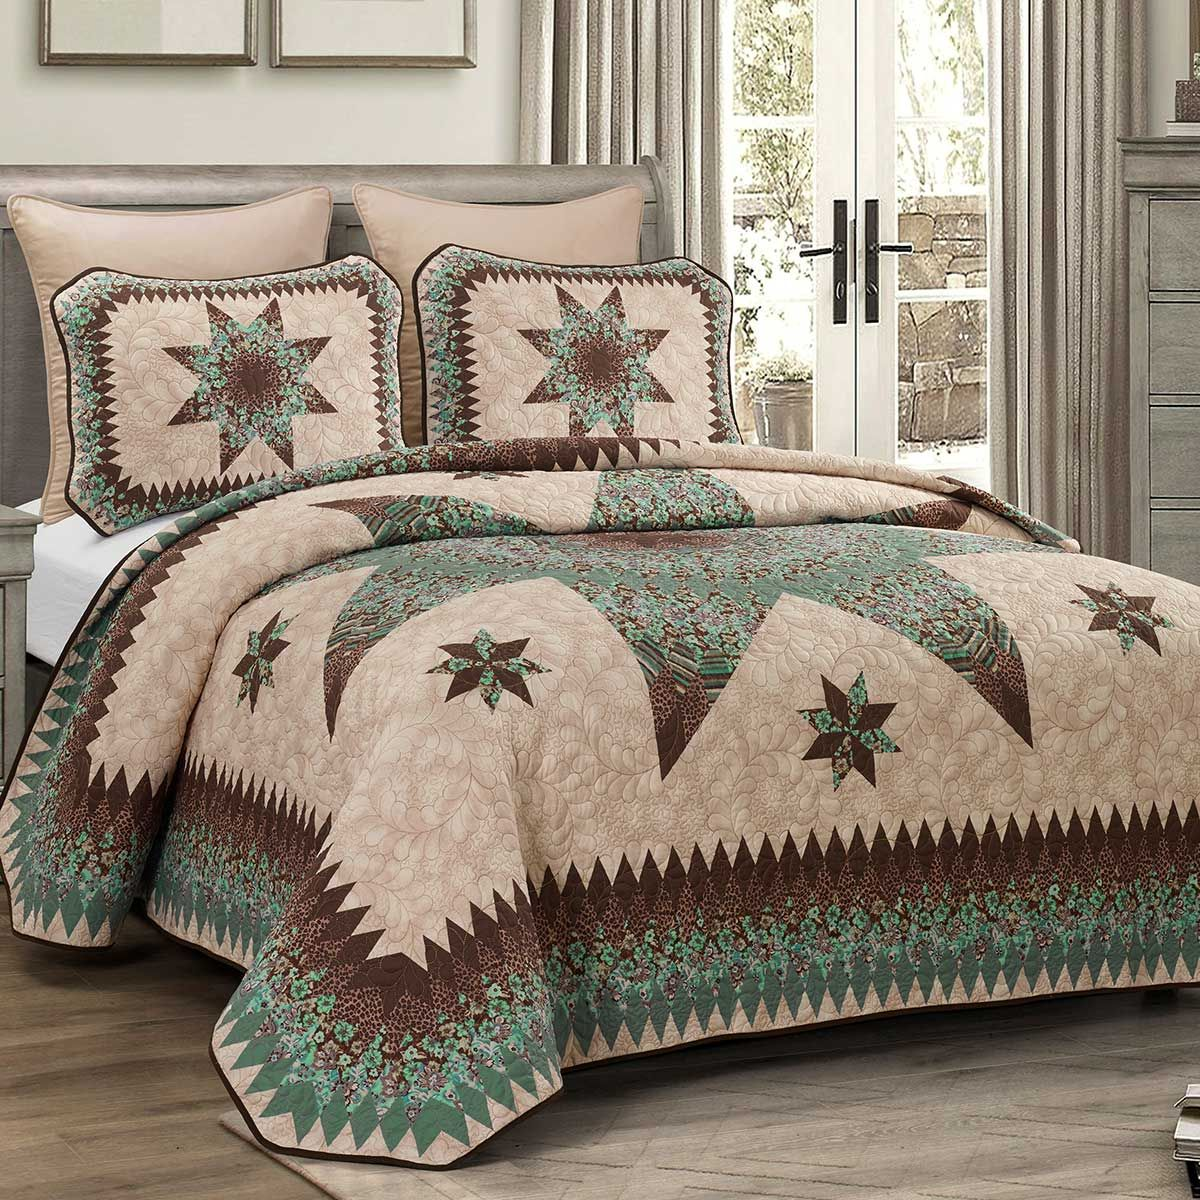 Aqua Star Quilt Set - King - OUT OF STOCK UNTIL 11/23/2020